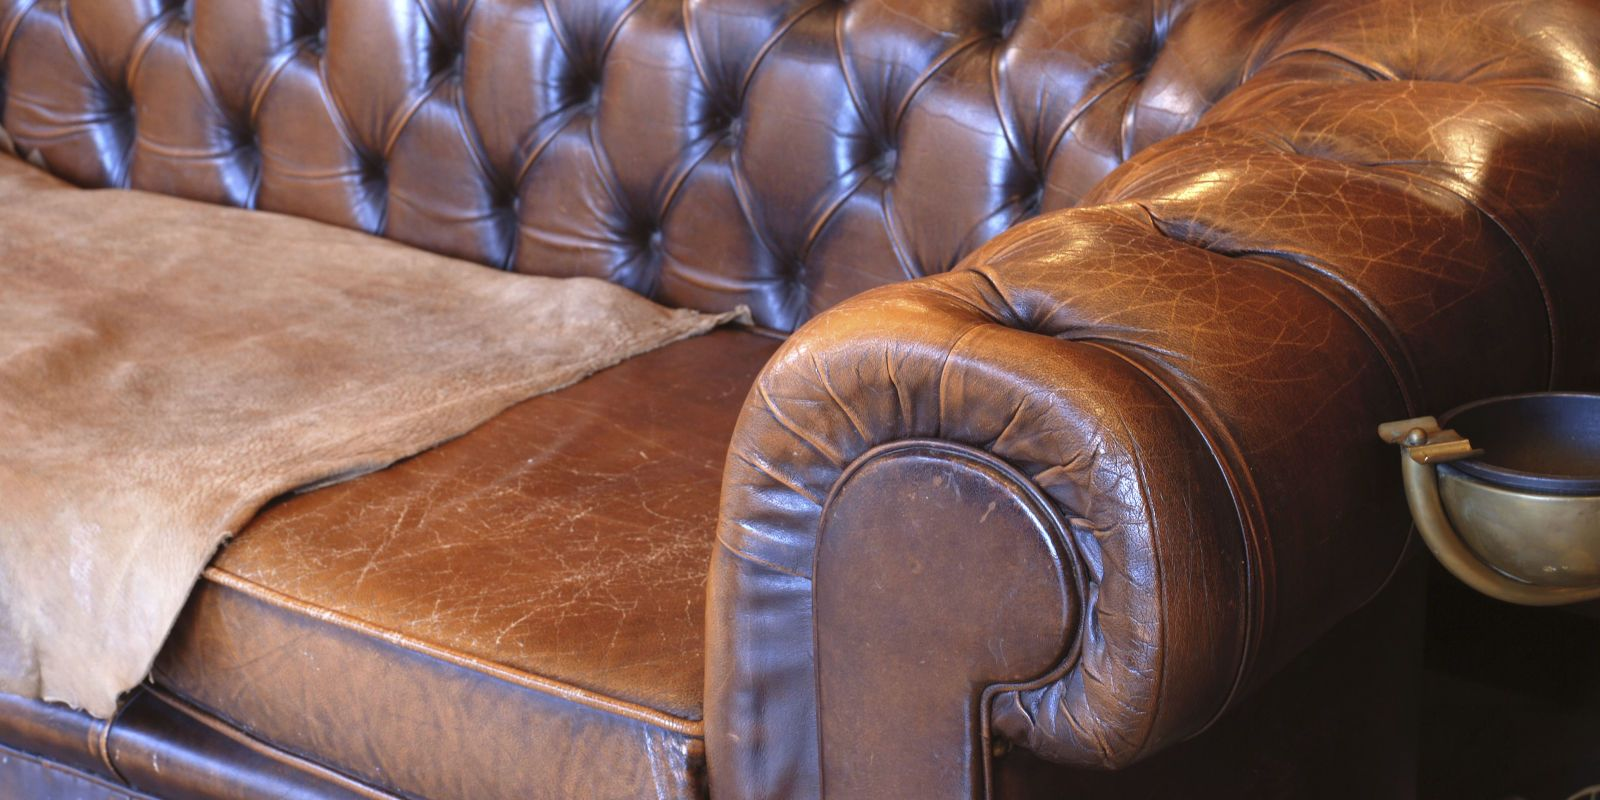 What Your Couch Says About You Cleaning Leather Couch Leather Couch Repair Leather Couch